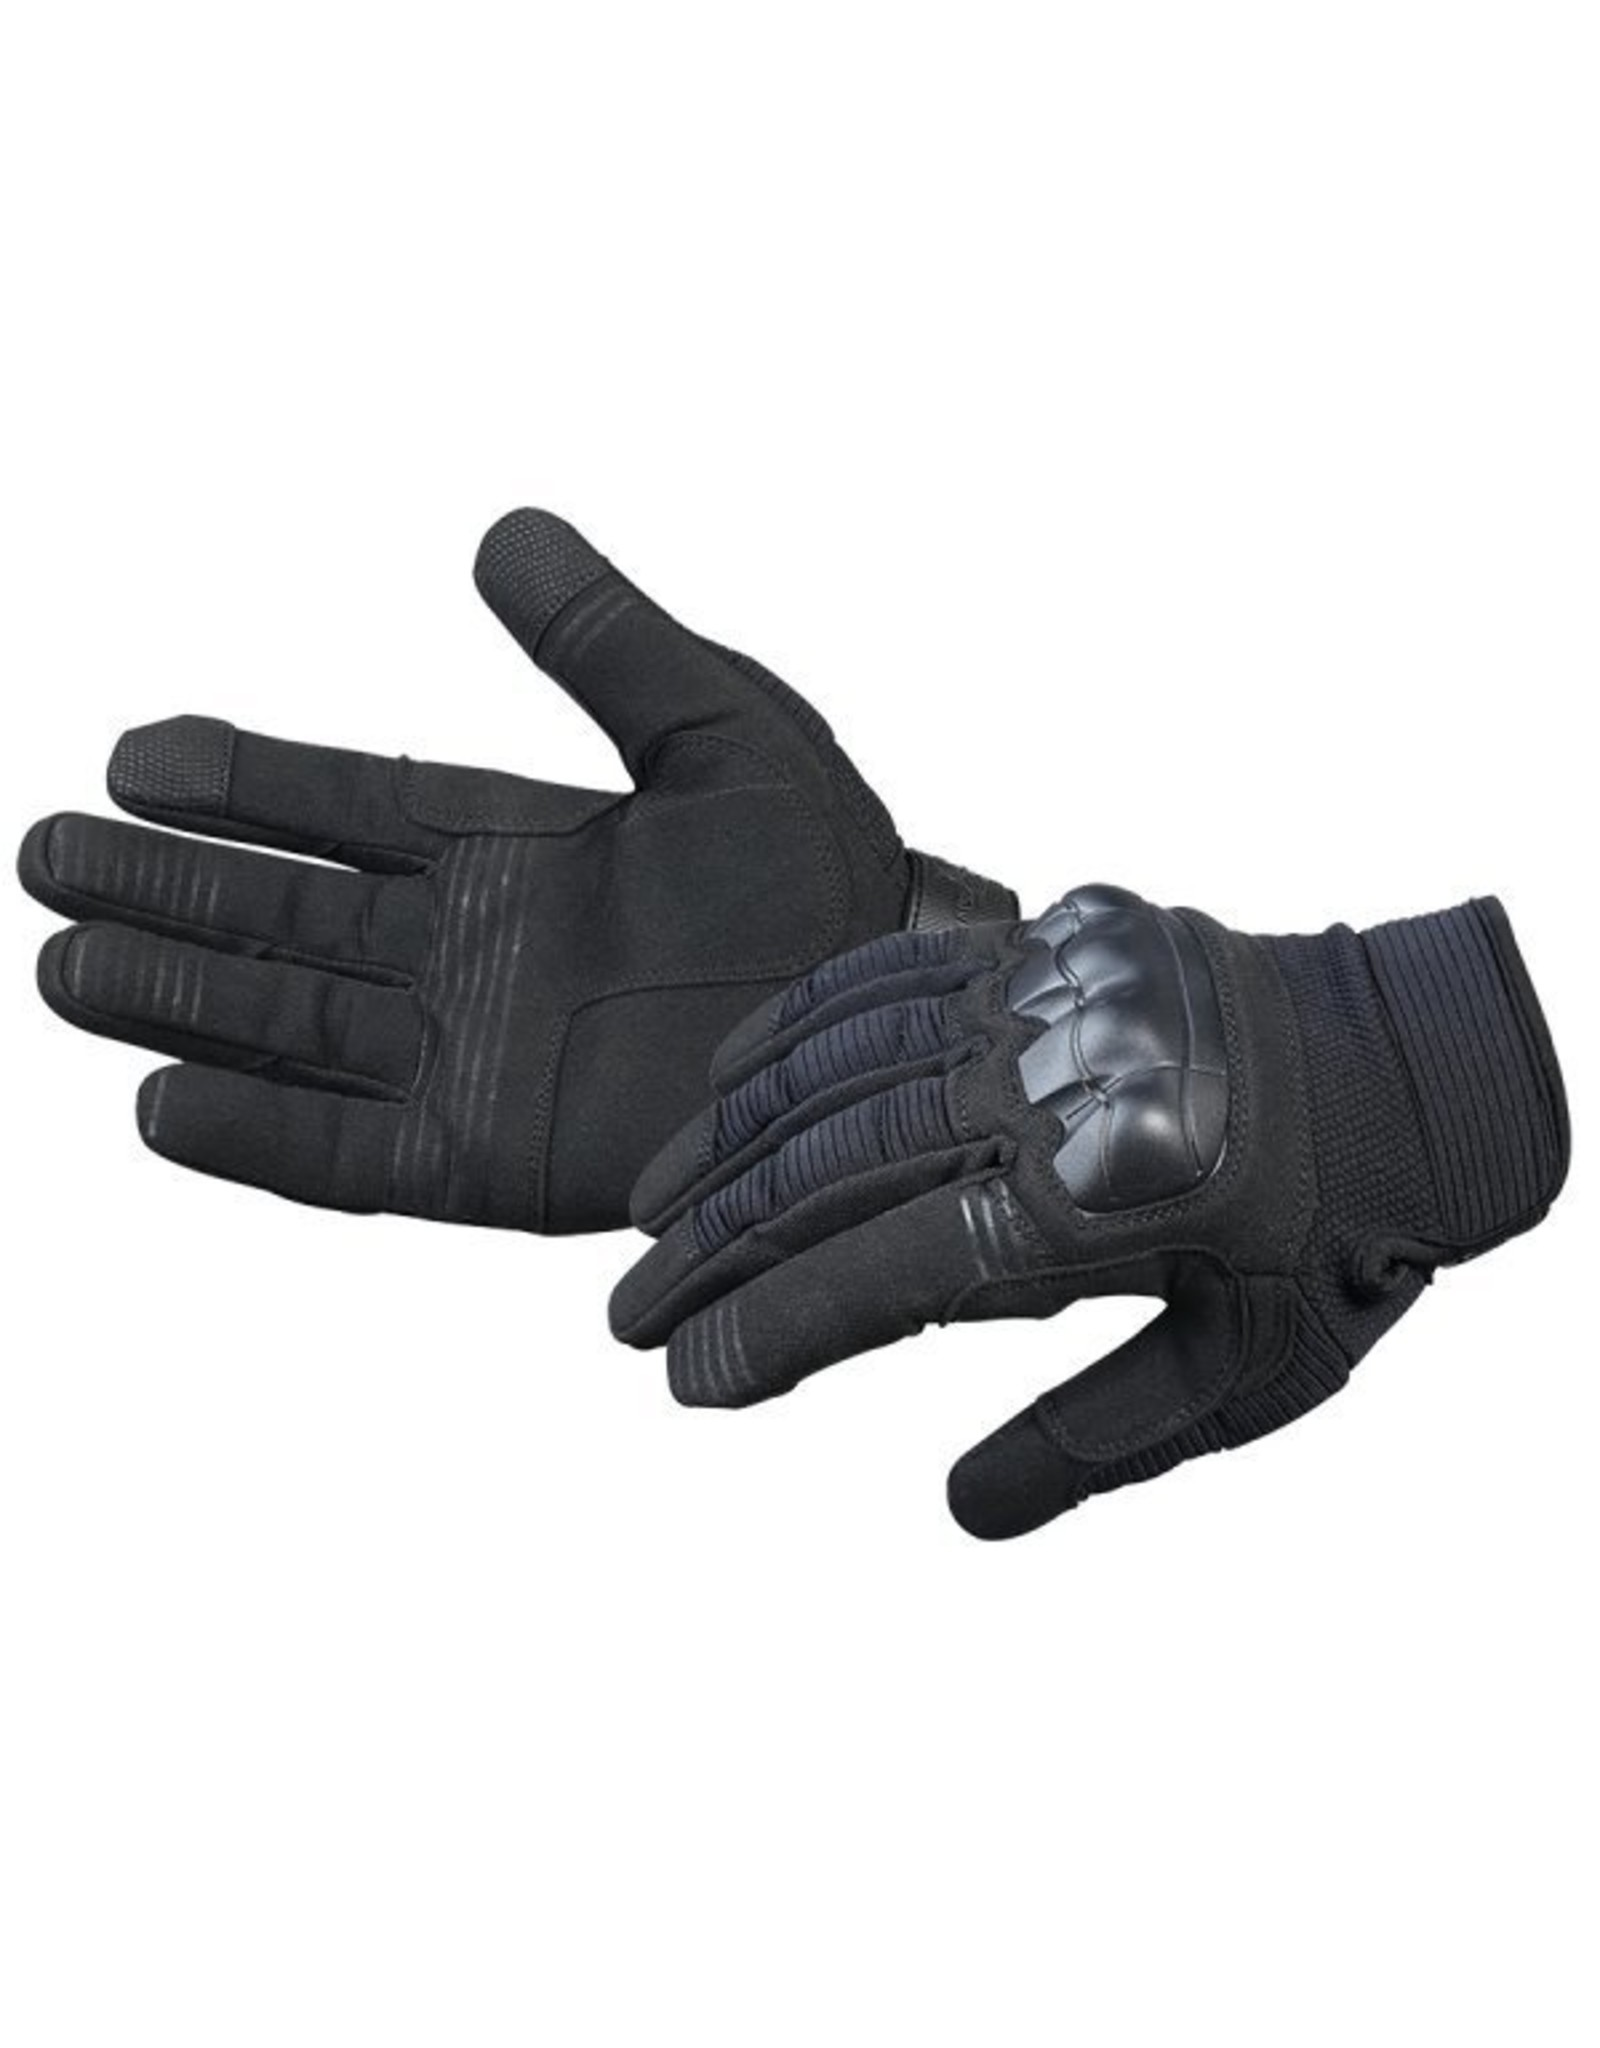 5IVE STAR GEAR Impact Armor Shell Gloves